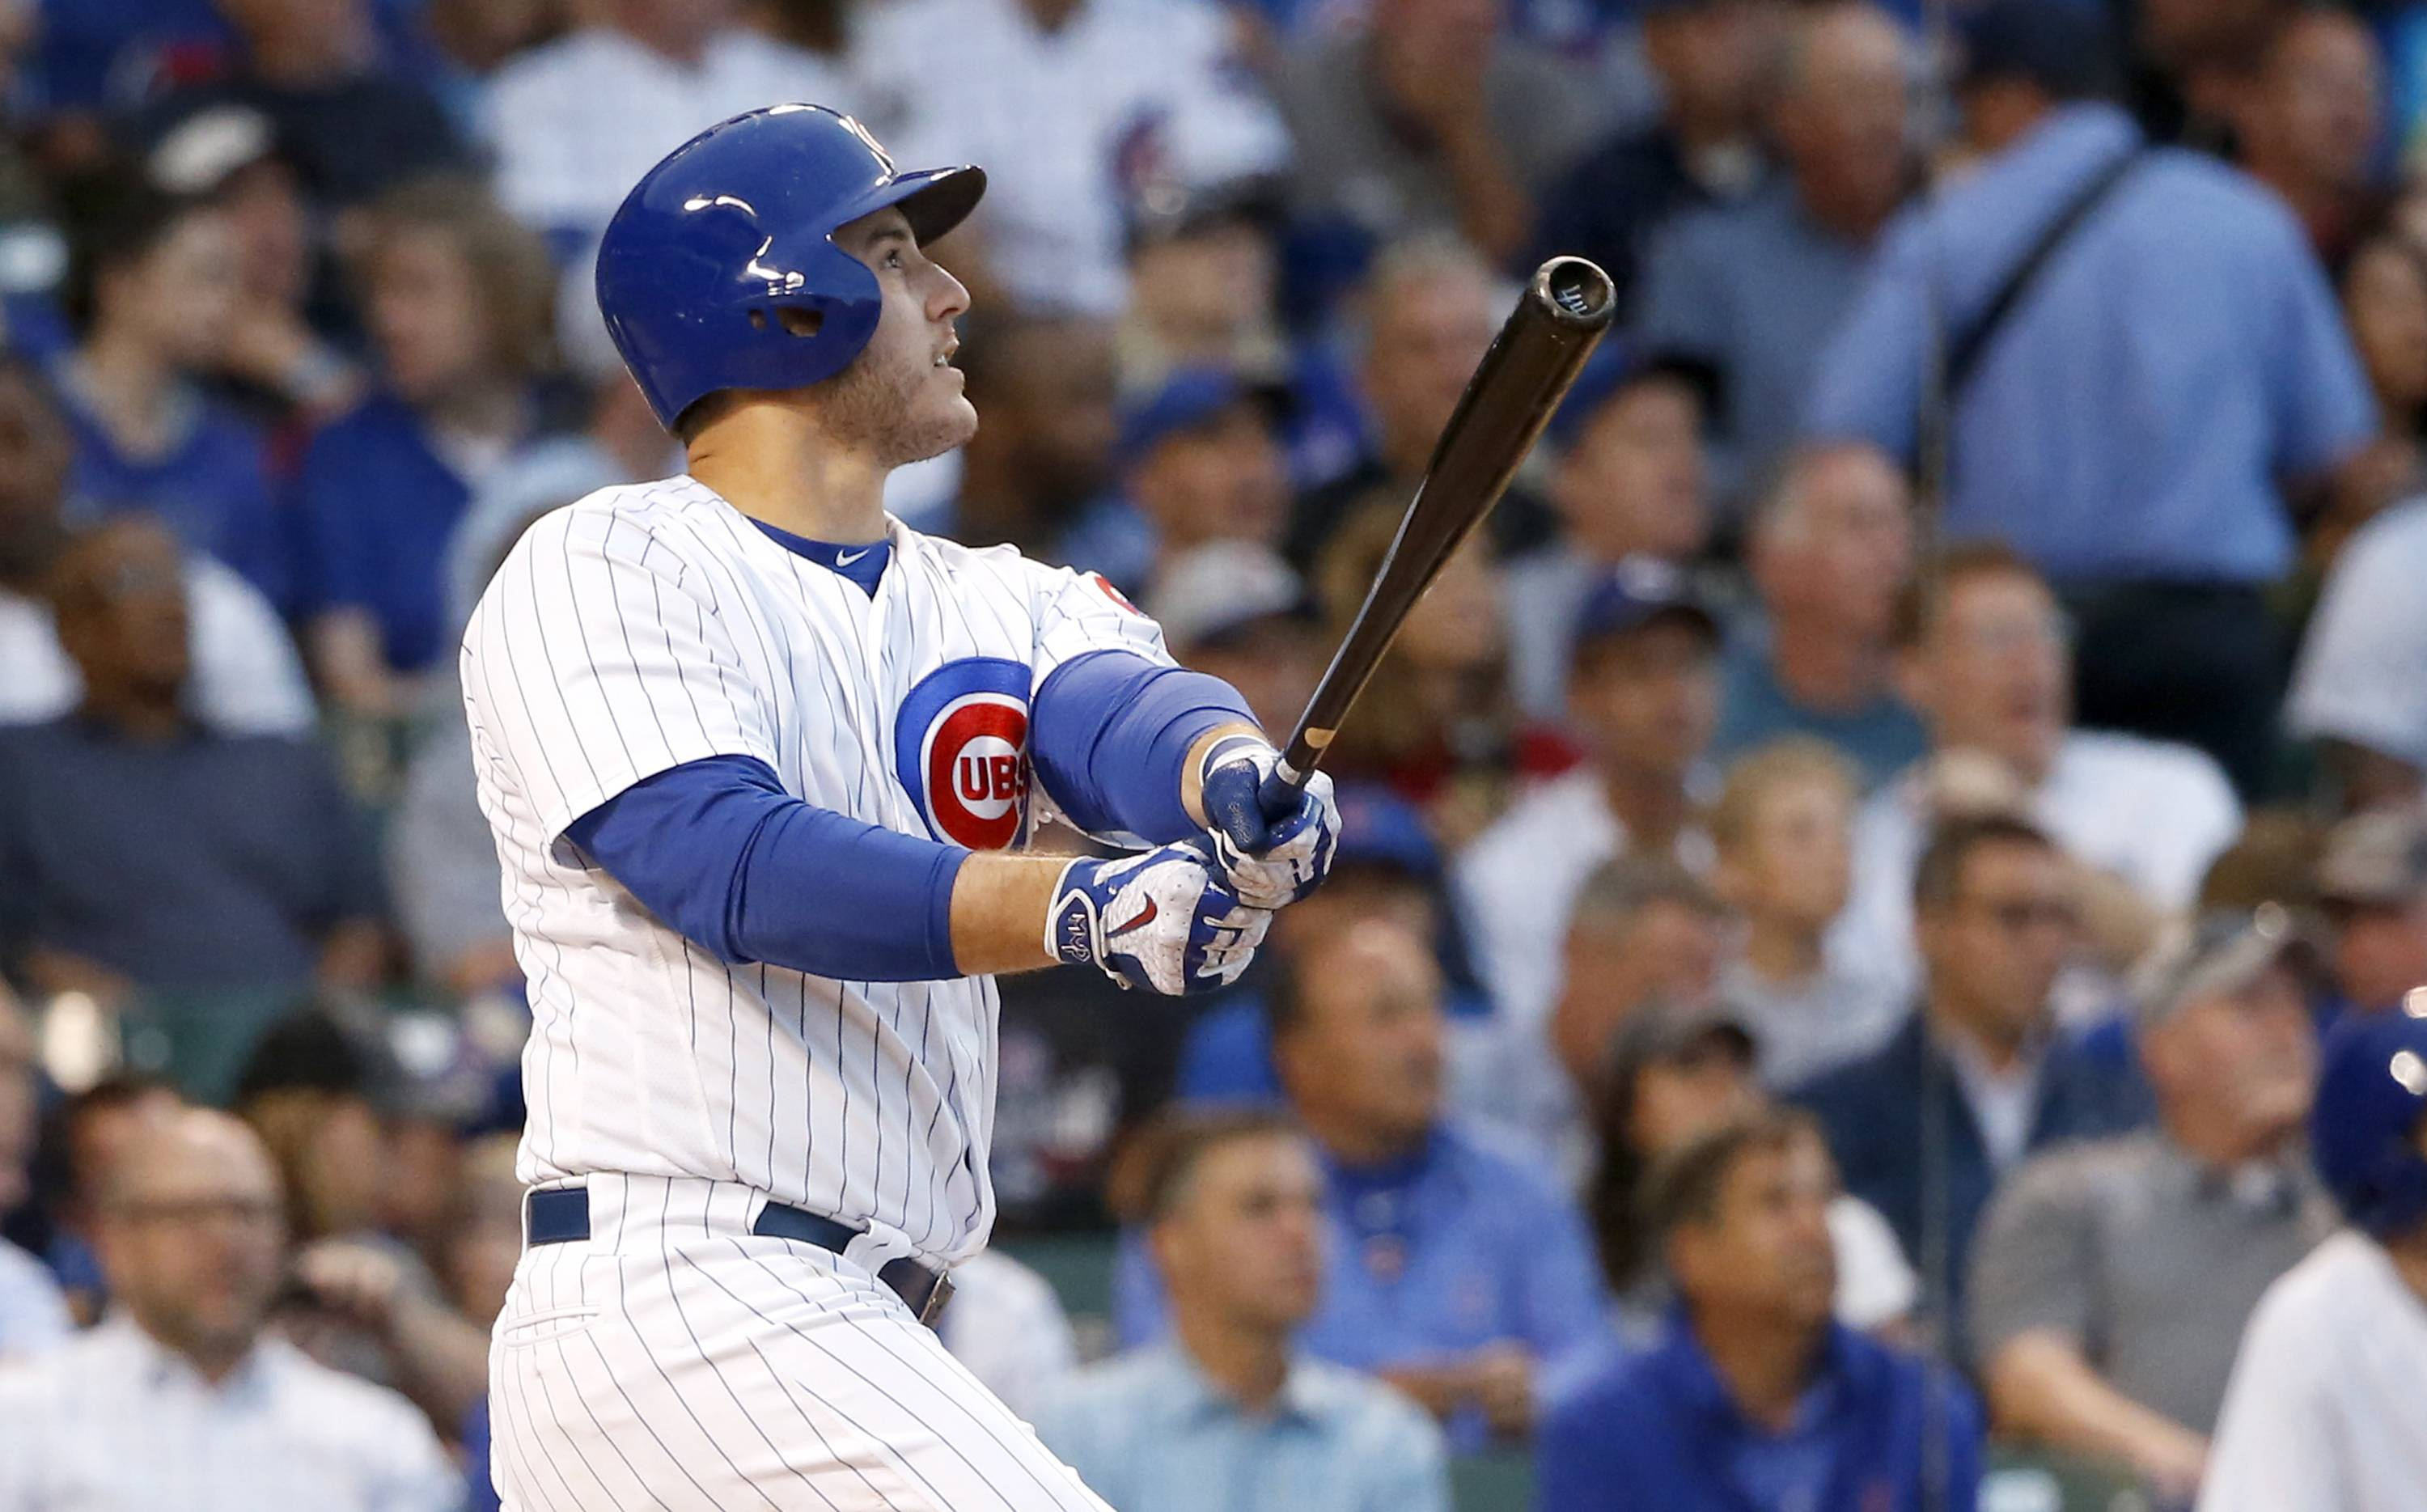 Will Rizzo in leadoff spot help Chicago Cubs rise above mediocrity?